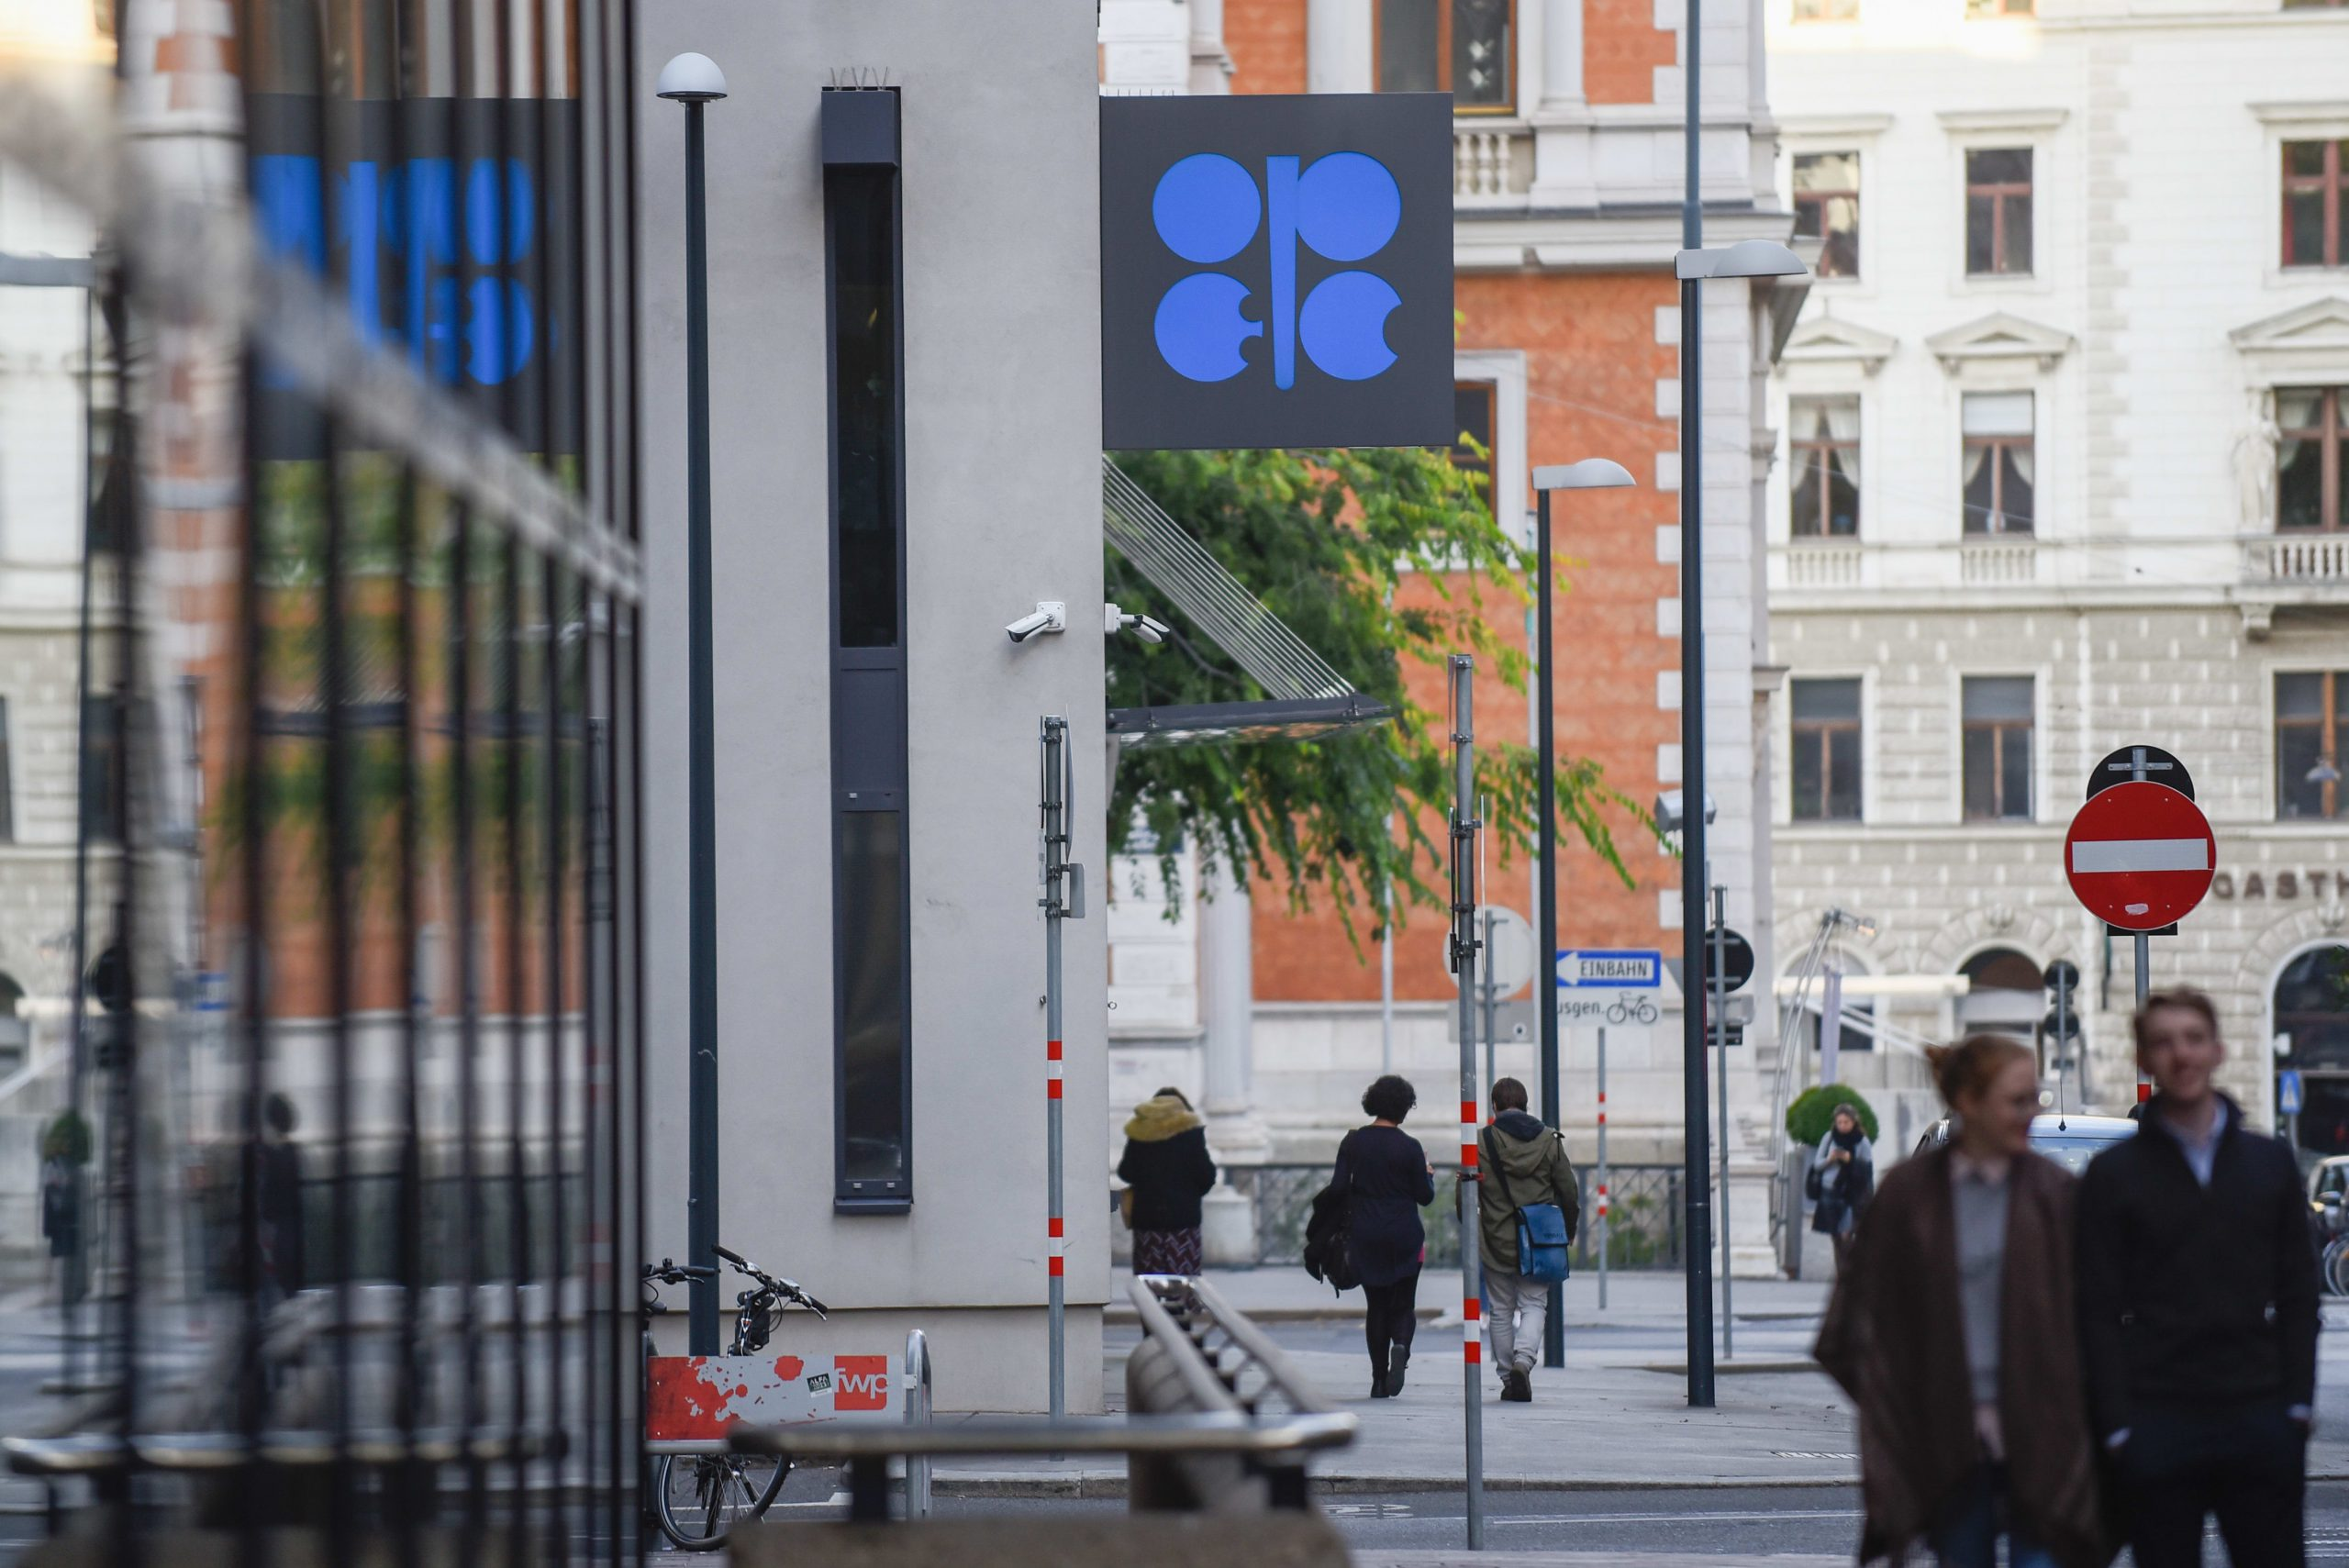 Expect OPEC oil production cuts to continue in 2020: Wood Mackenzie